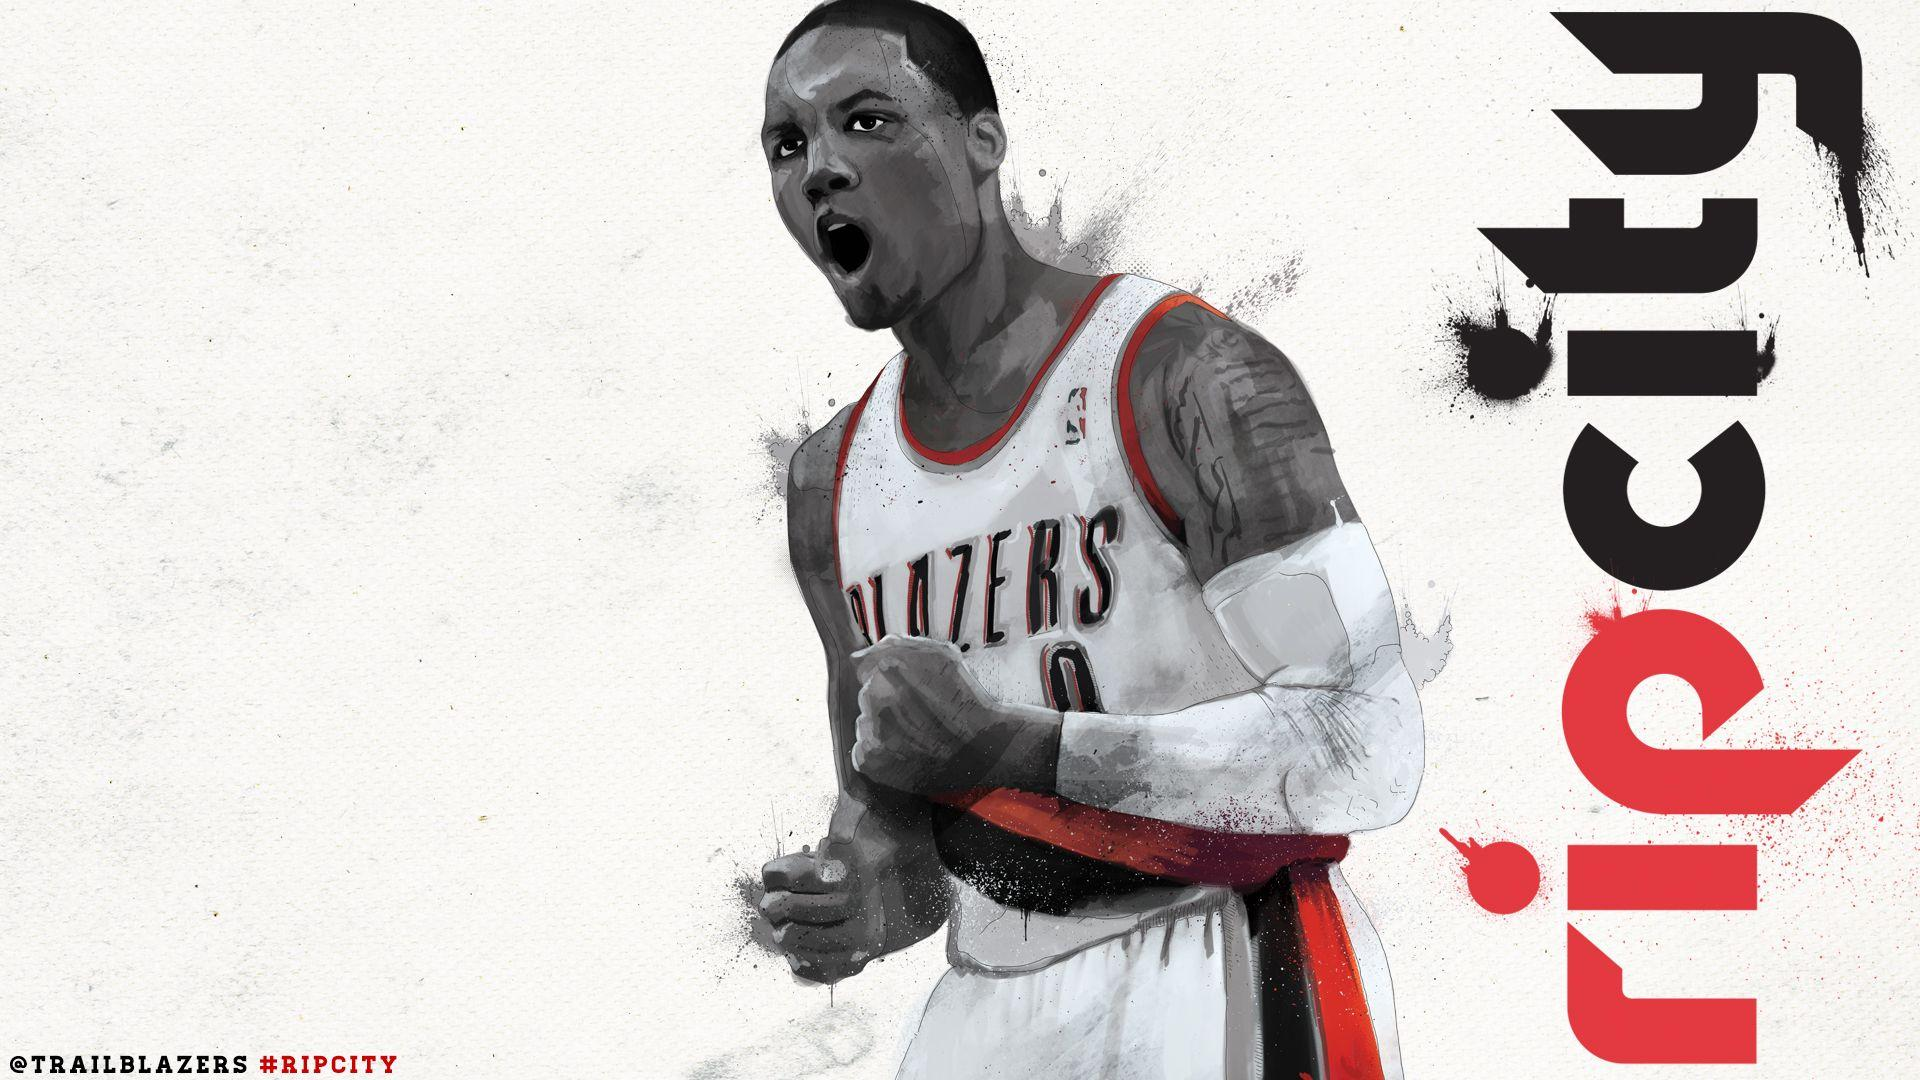 Damian Lillard HD Wallpaper - WallpaperSafari